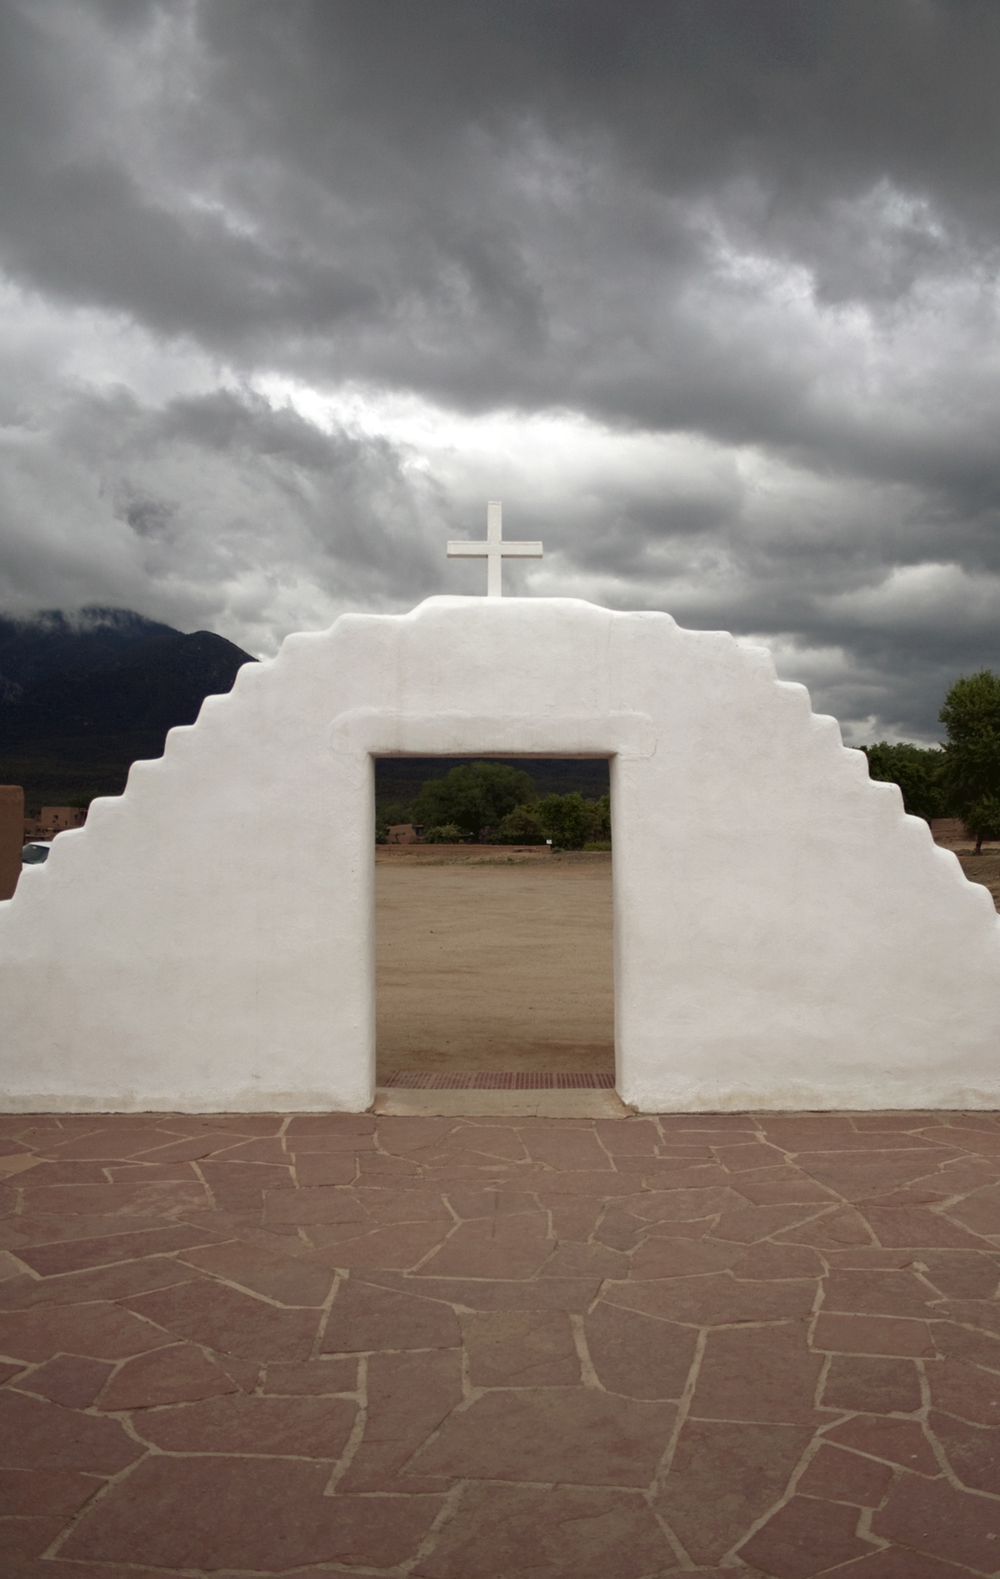 Taos_Pueblo1upload.jpg